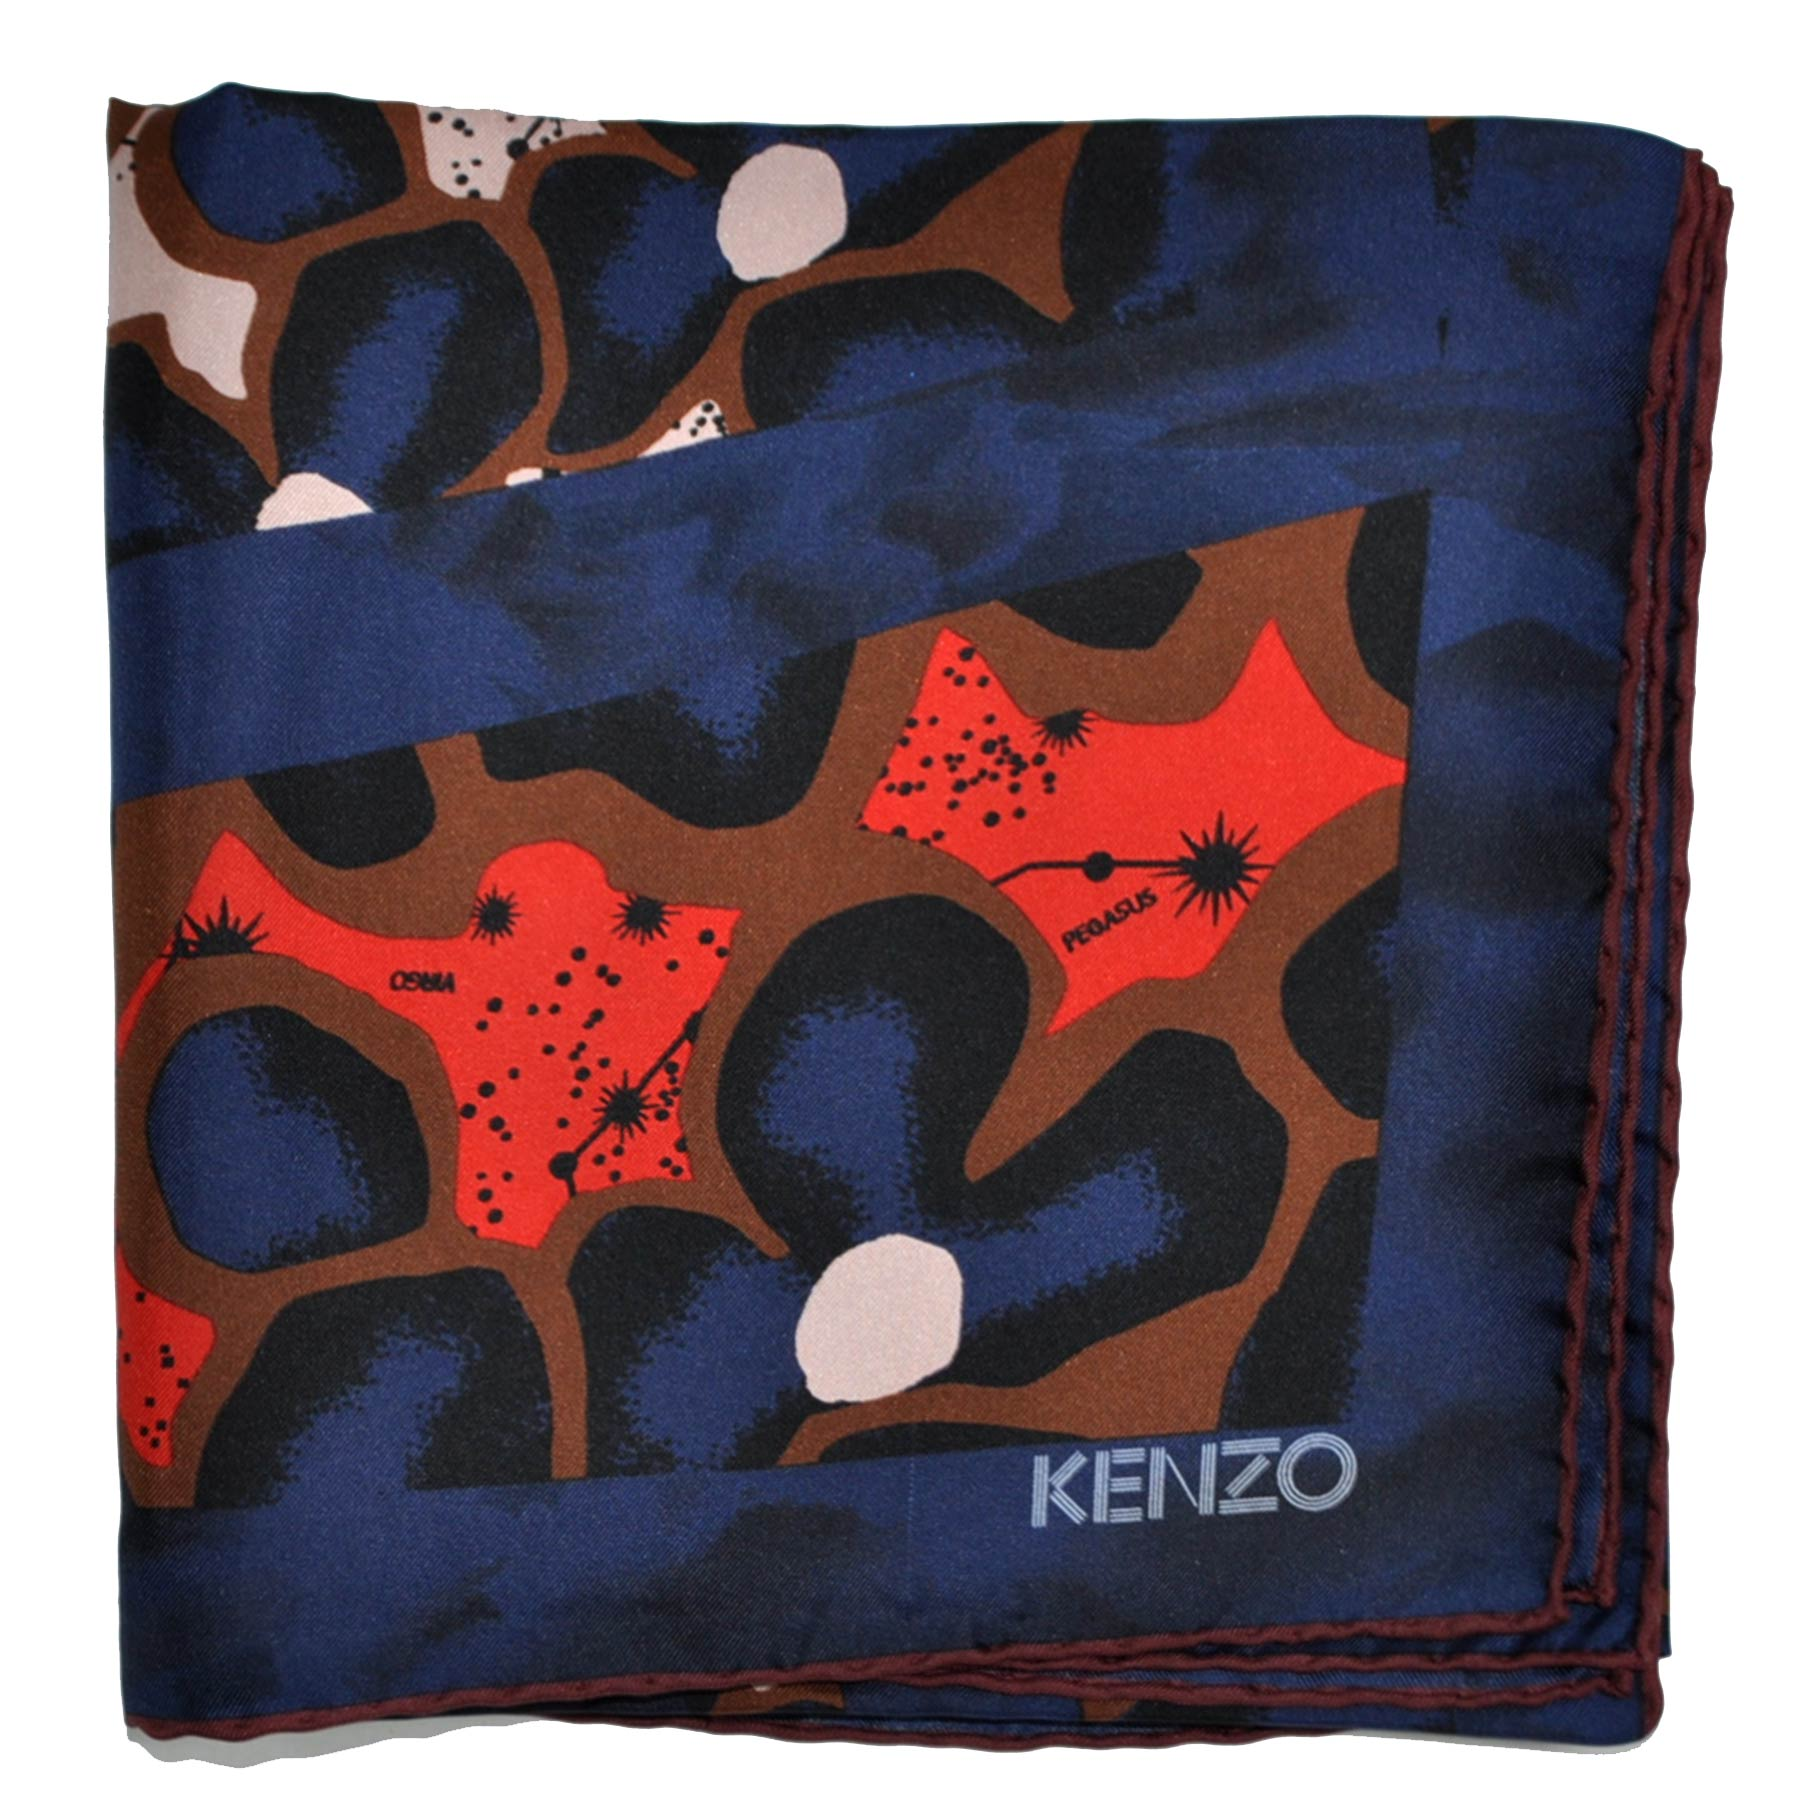 Kenzo Scarf Lapis Blue Brown Orange Design